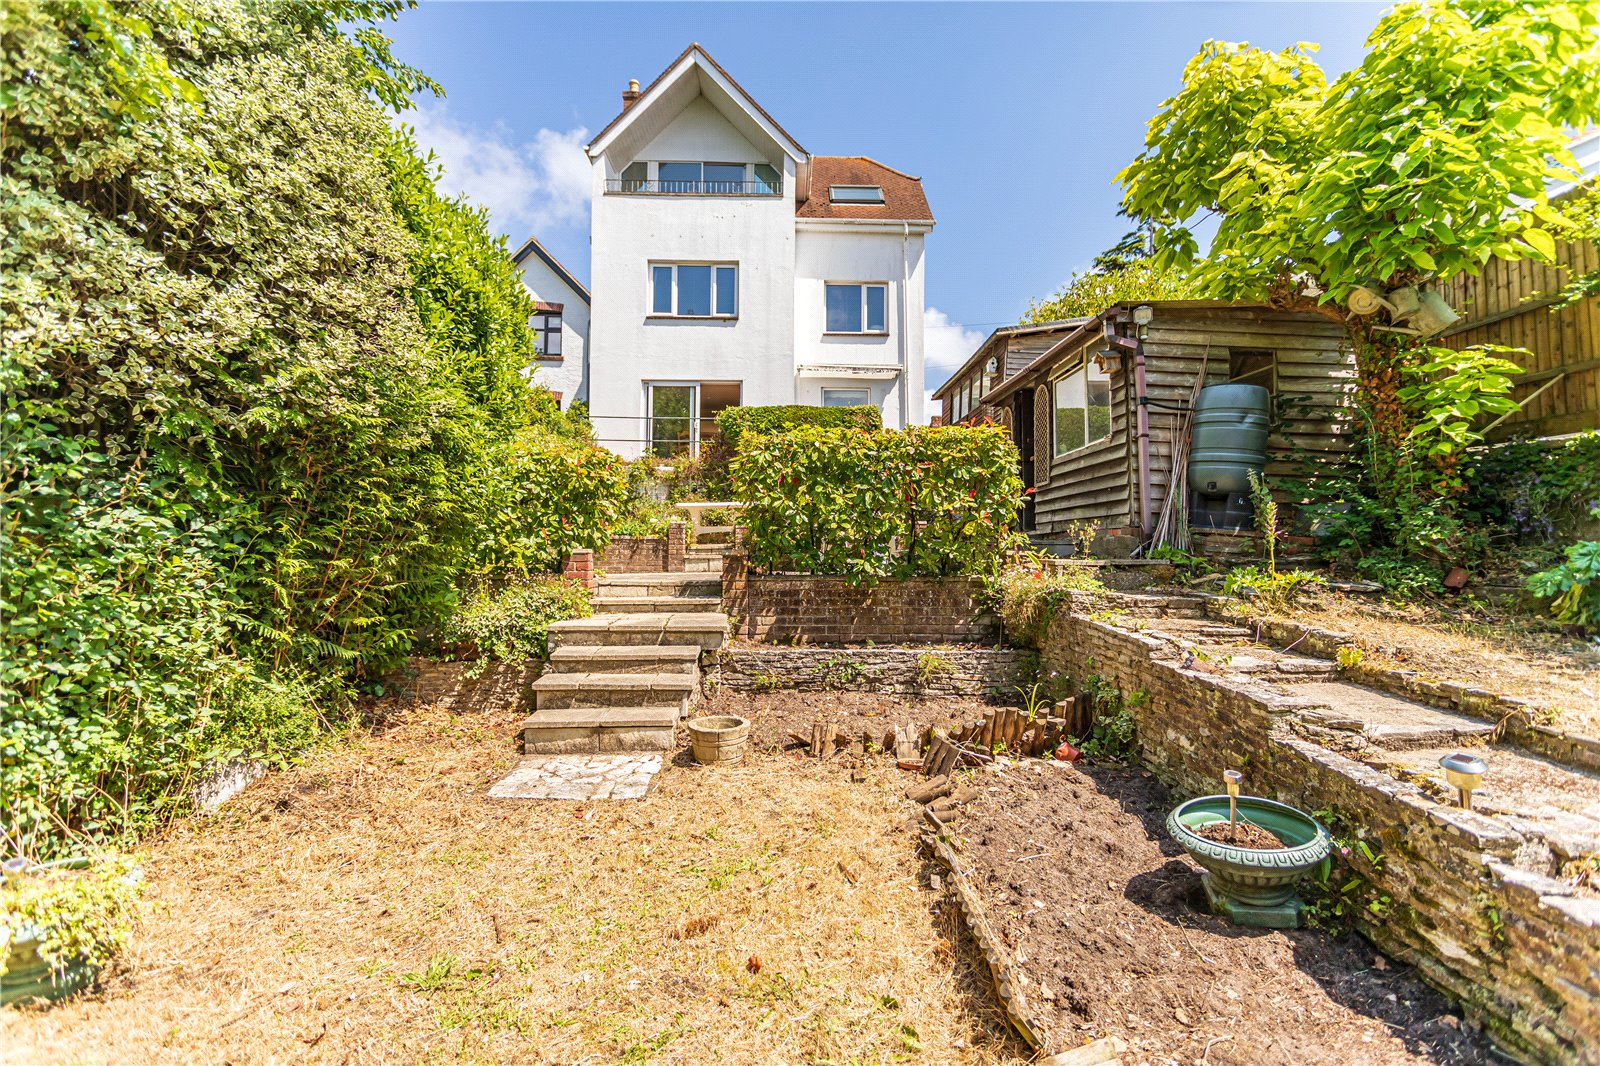 5 bed house for sale in Harbour View Road, Lower Parkstone, BH14